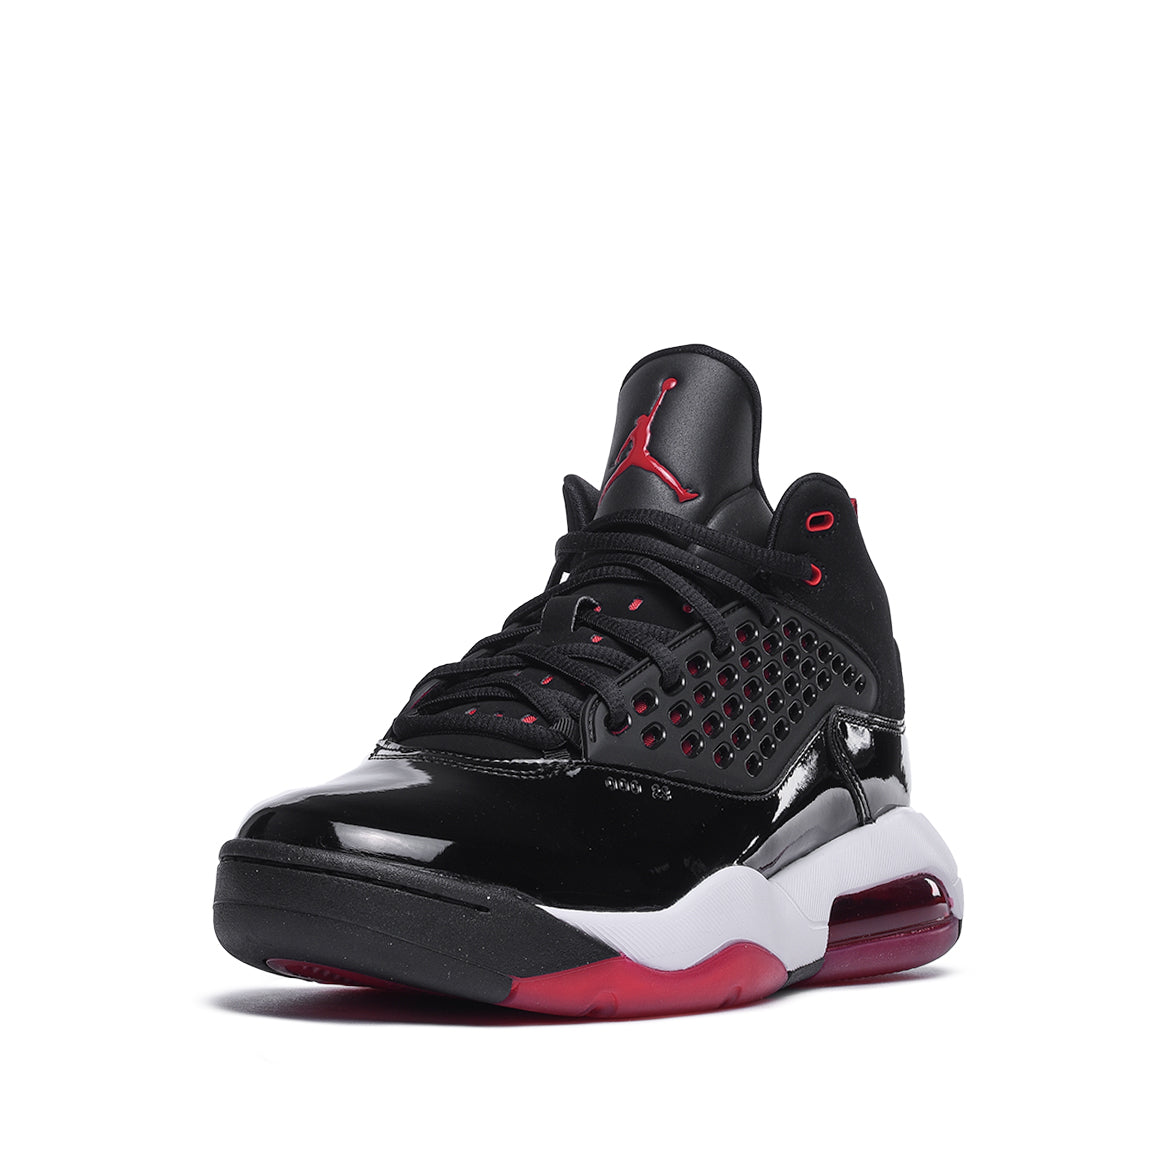 JORDAN MAXIN 200 - BLACK / WHITE / GYM RED